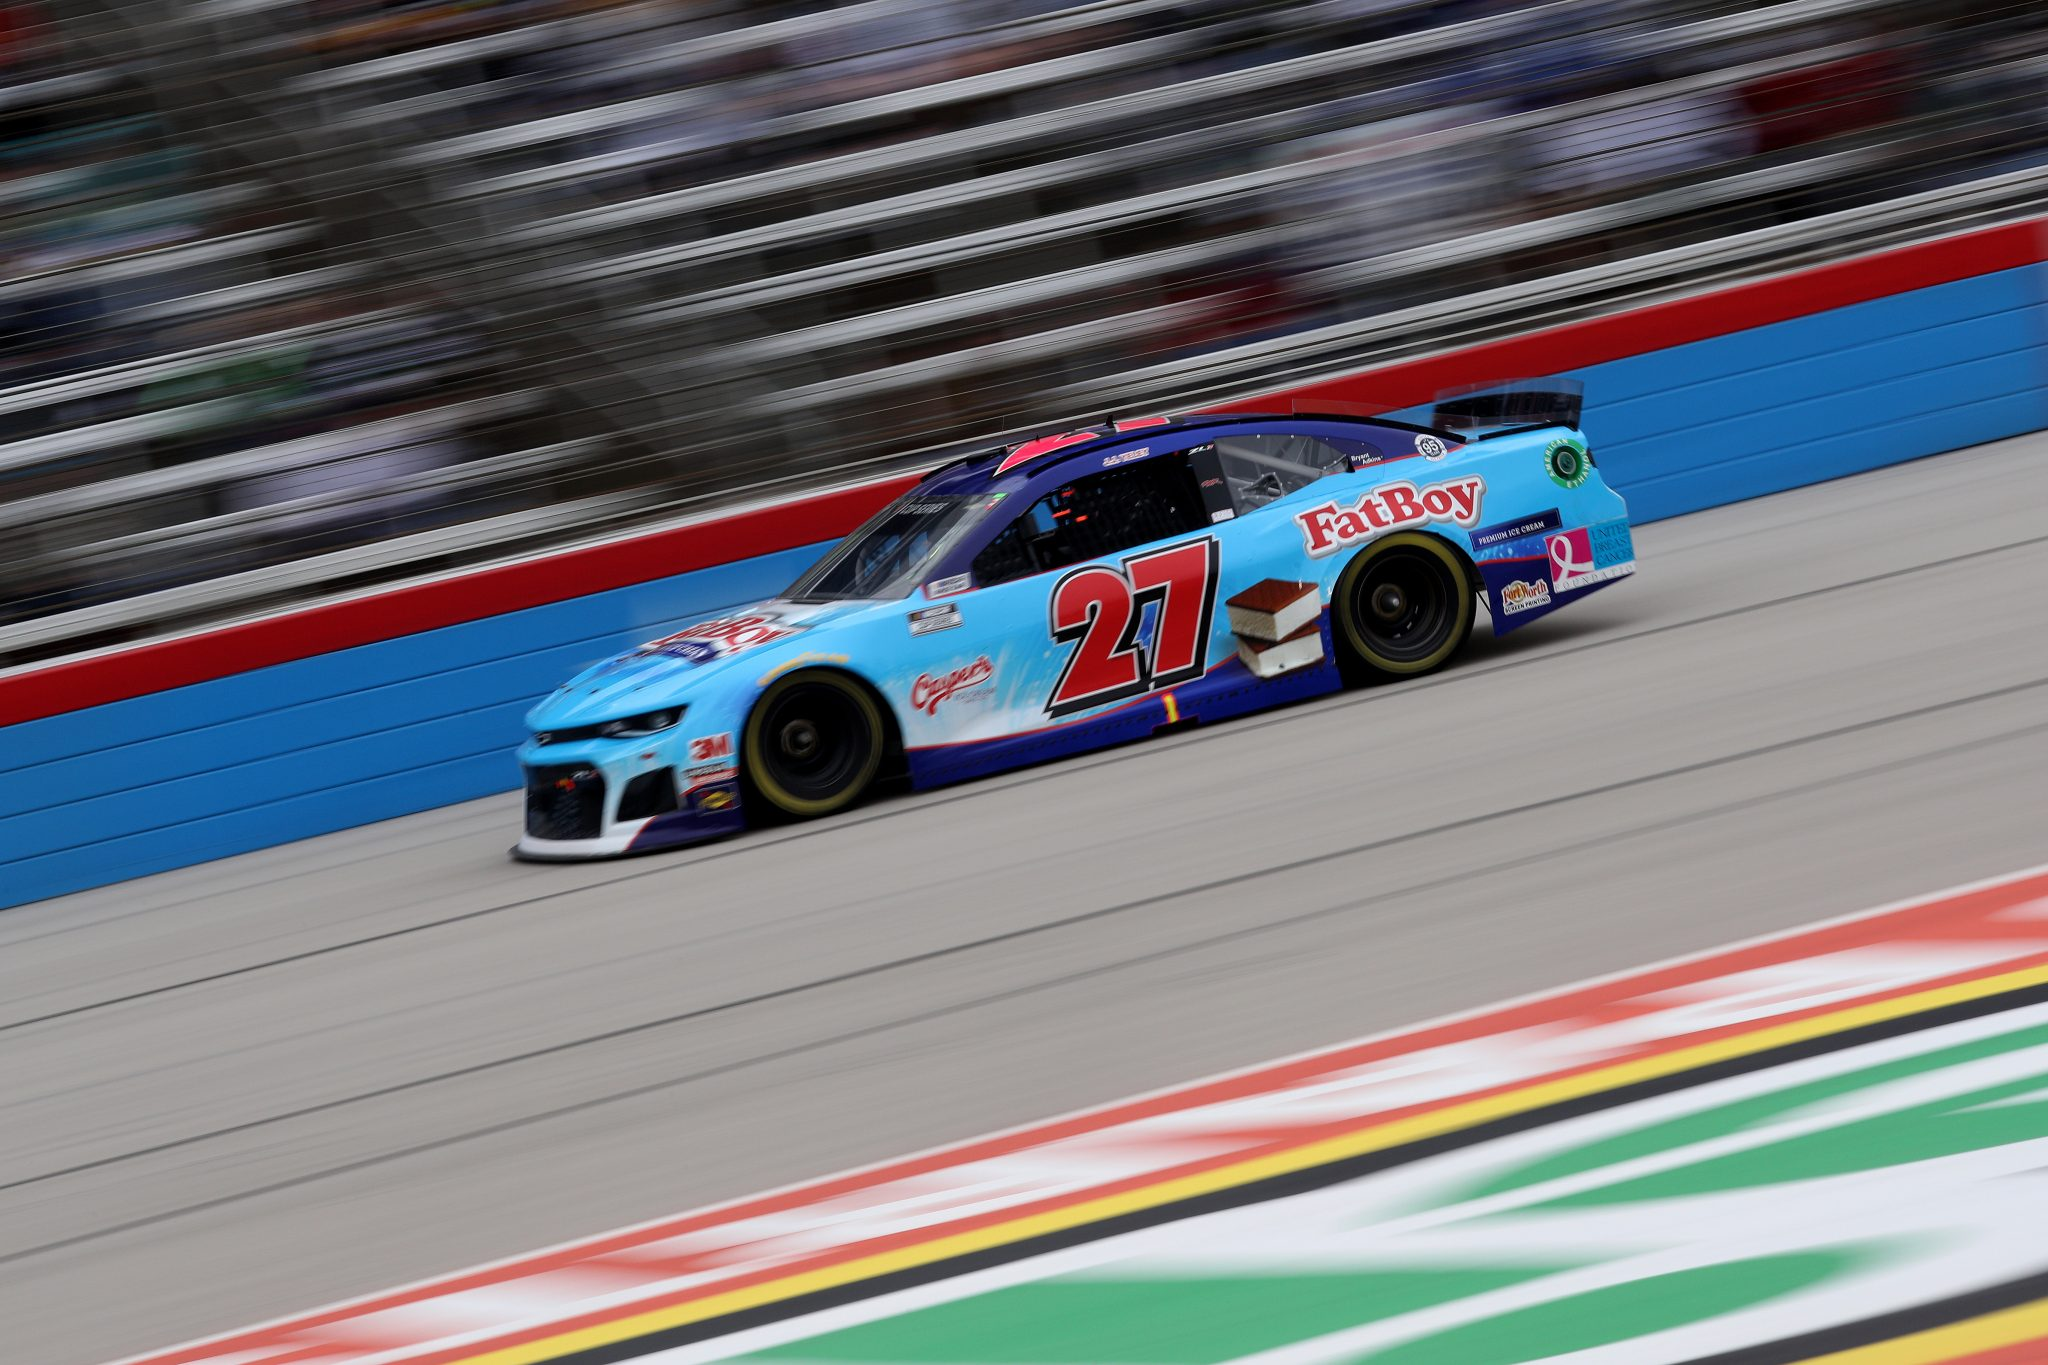 FORT WORTH, TEXAS - OCTOBER 25: JJ Yeley, driver of the #27 Fat Boy Ice Cream Chevrolet, drives during the NASCAR Cup Series Autotrader EchoPark Automotive 500 at Texas Motor Speedway on October 25, 2020 in Fort Worth, Texas. (Photo by Chris Graythen/Getty Images) | Getty Images